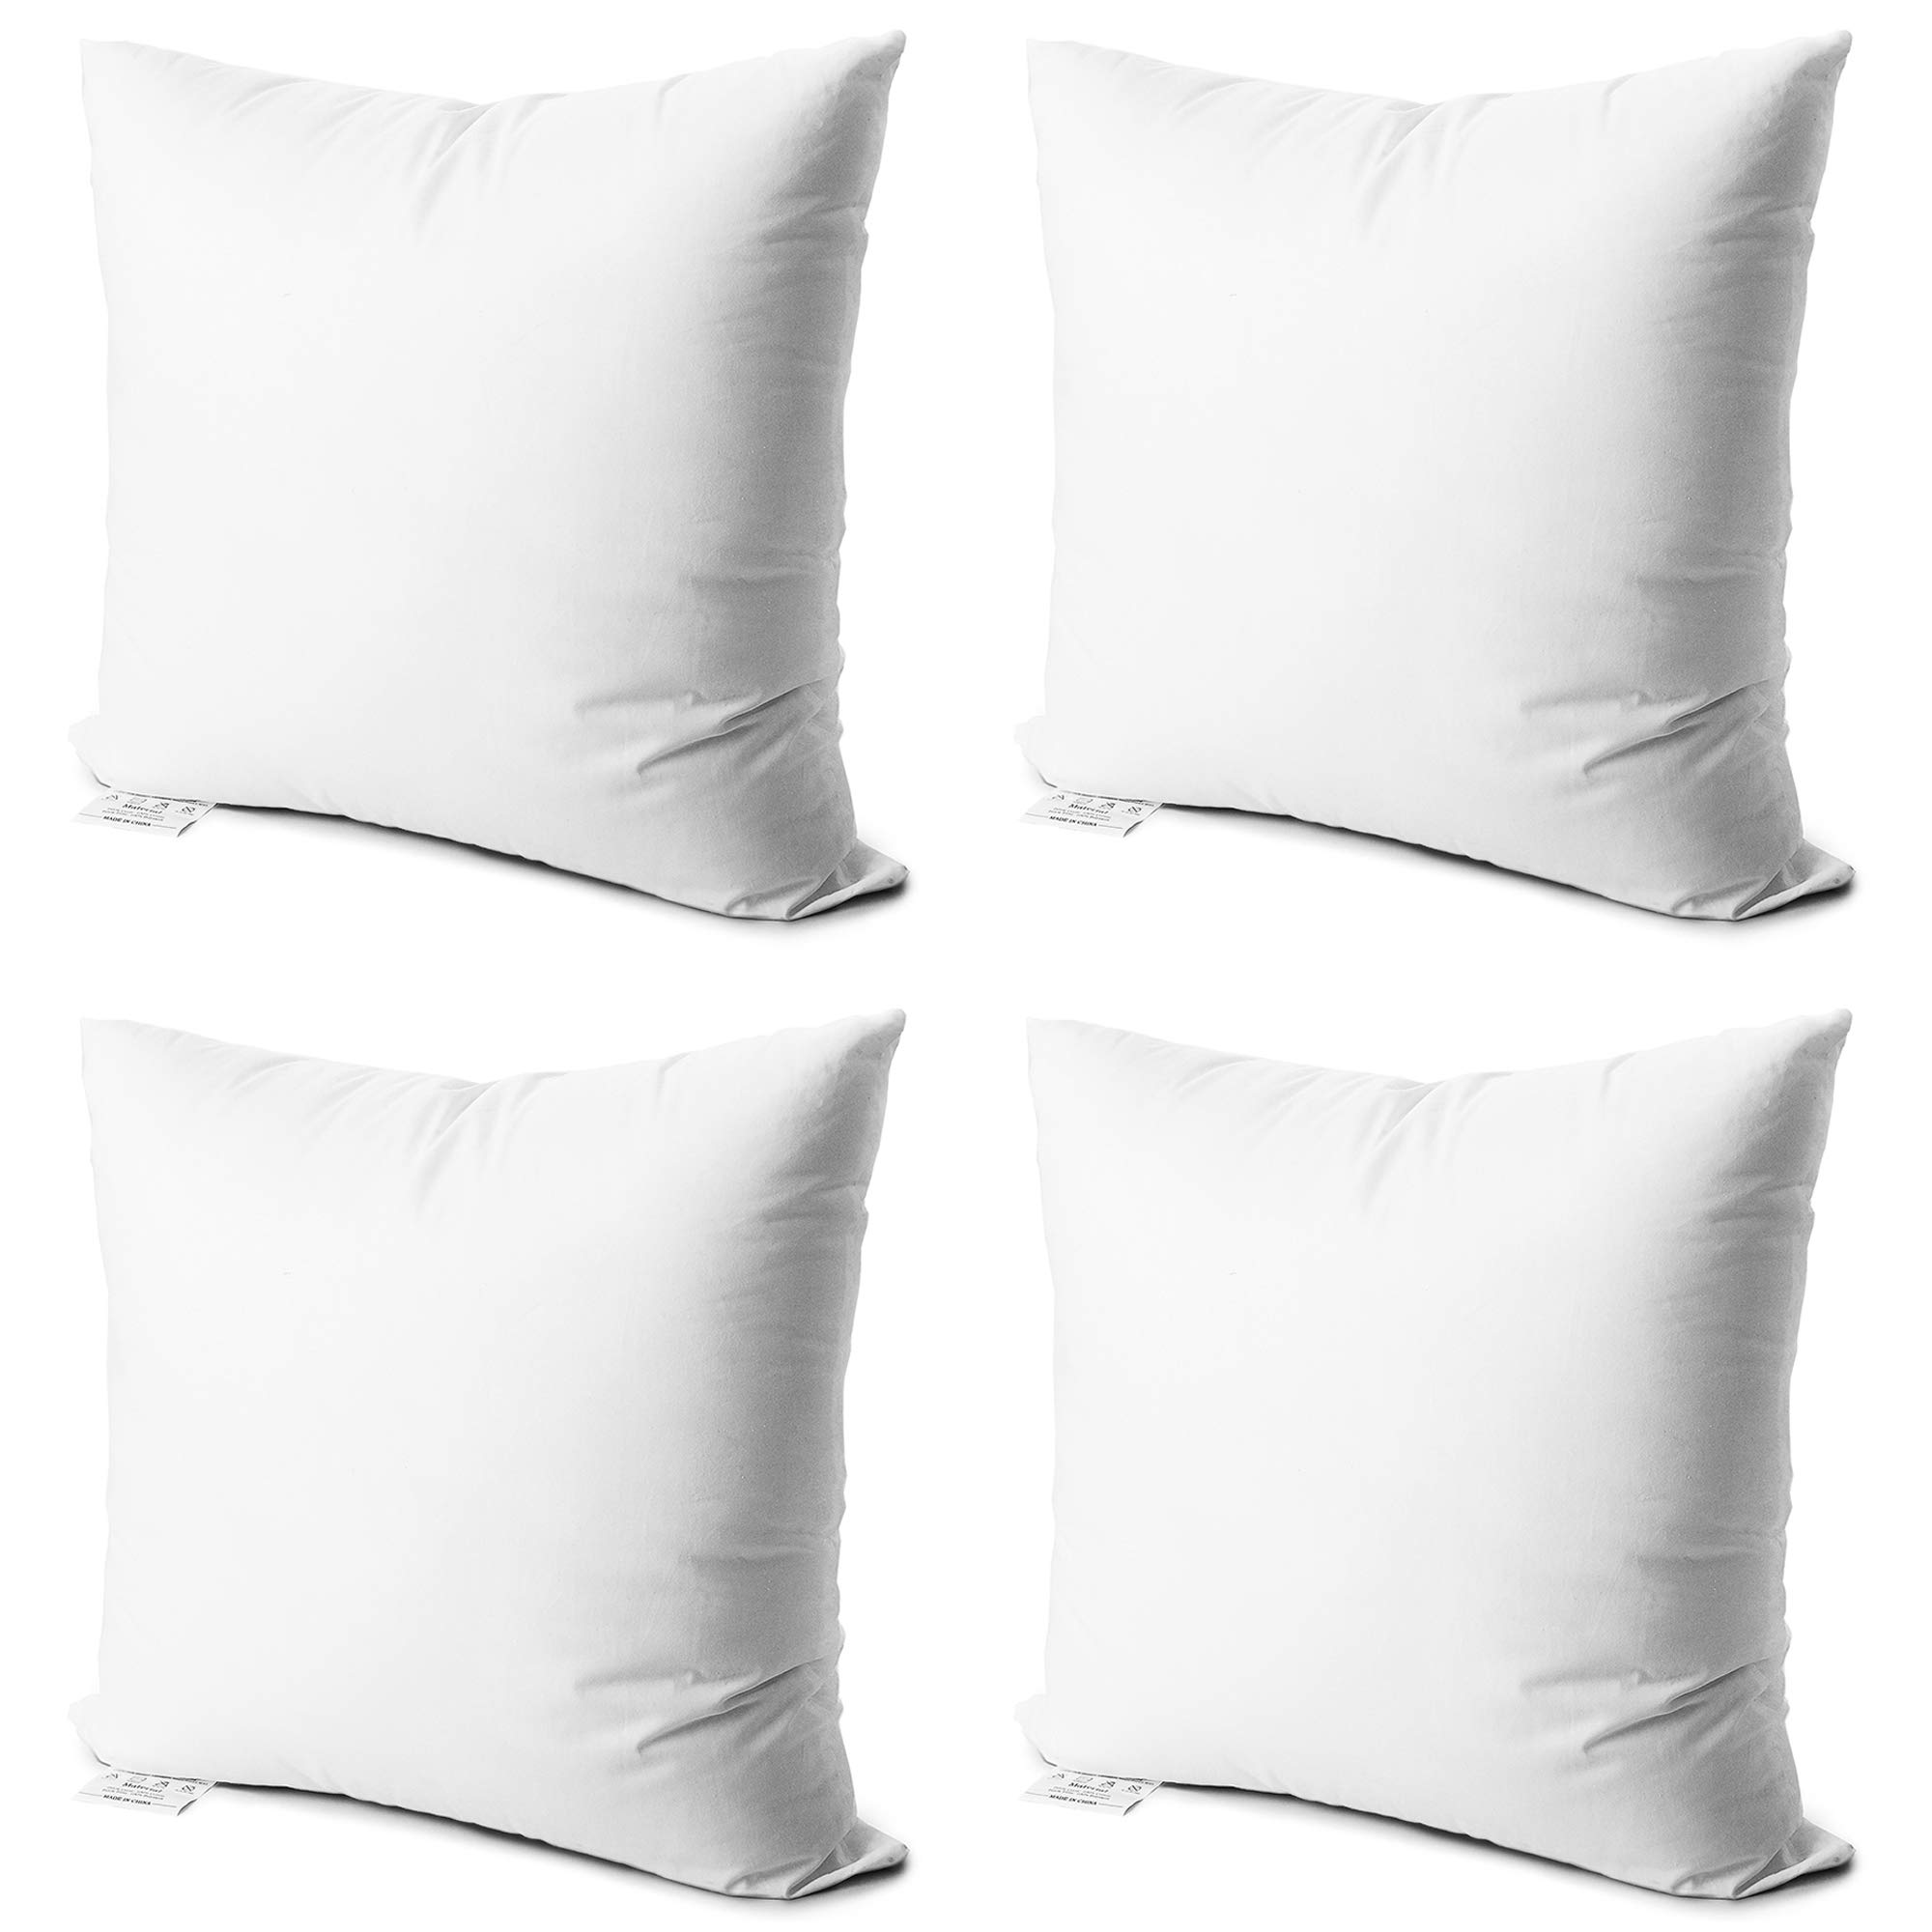 Edow Throw Pillow Inserts,Set of 4 Soft Hypoallergenic Down Alternative Polyester Square Form Decorative Pillow, Cushion,Sham Stuffer,Cotton Cover. (White, 18x18)